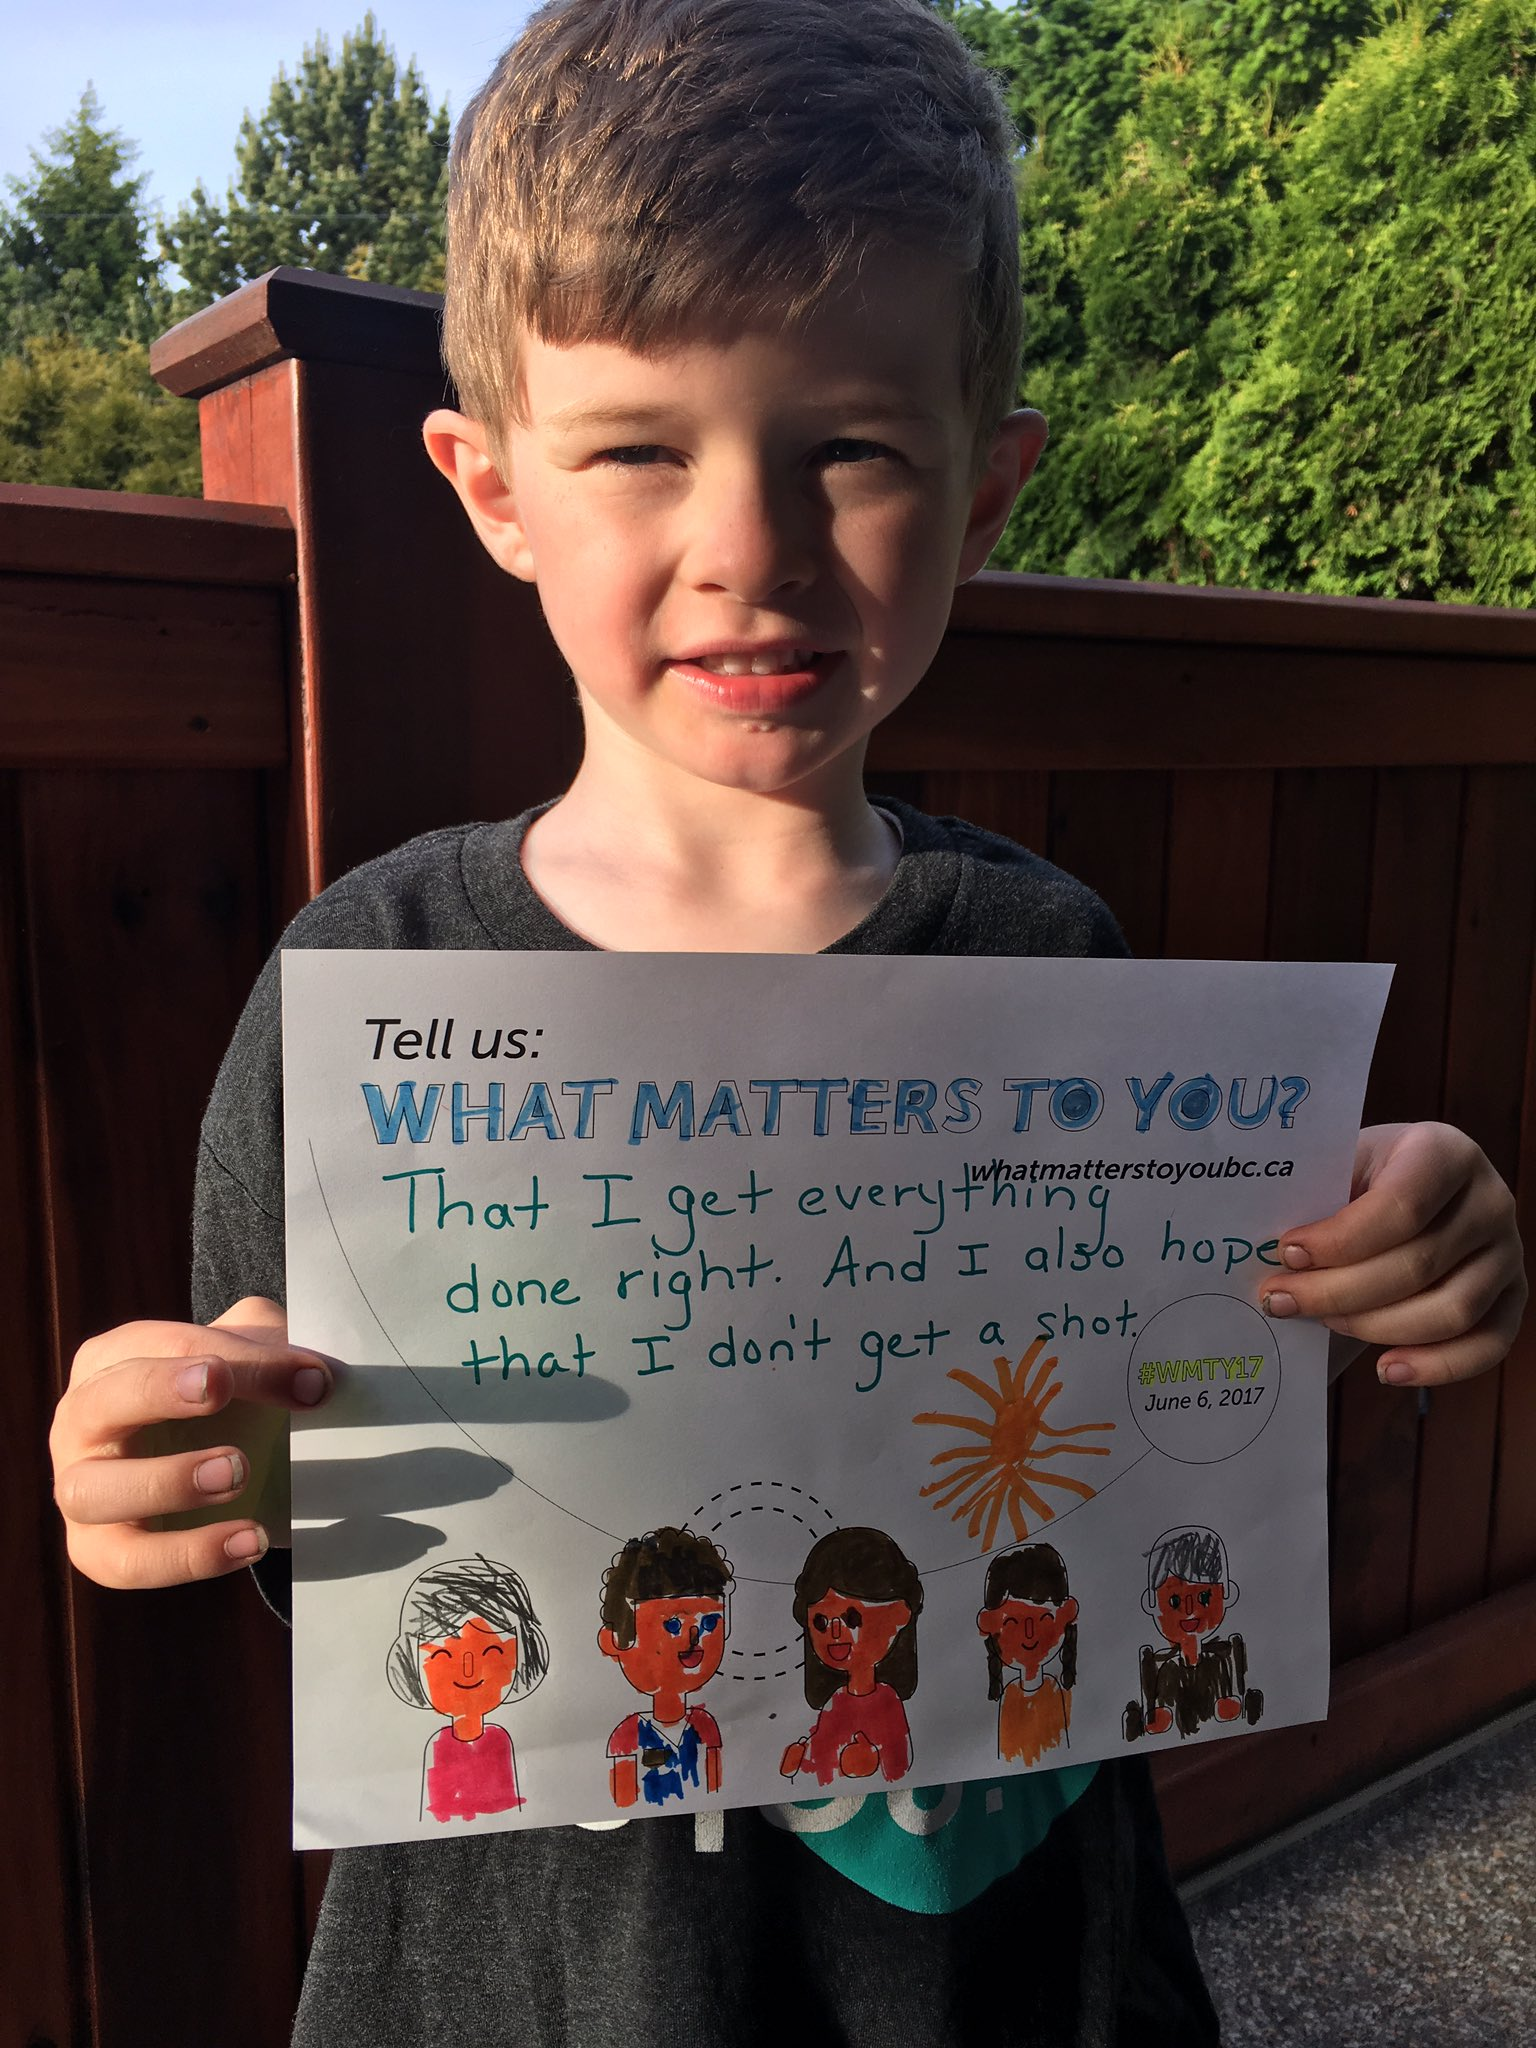 Young pts have lots to say about #WMTY17  Here's my son's response shortly after his 1st ED visit @PatientVoicesBC @BCPSQC @VanIslandHealth https://t.co/izZV0CZ53k